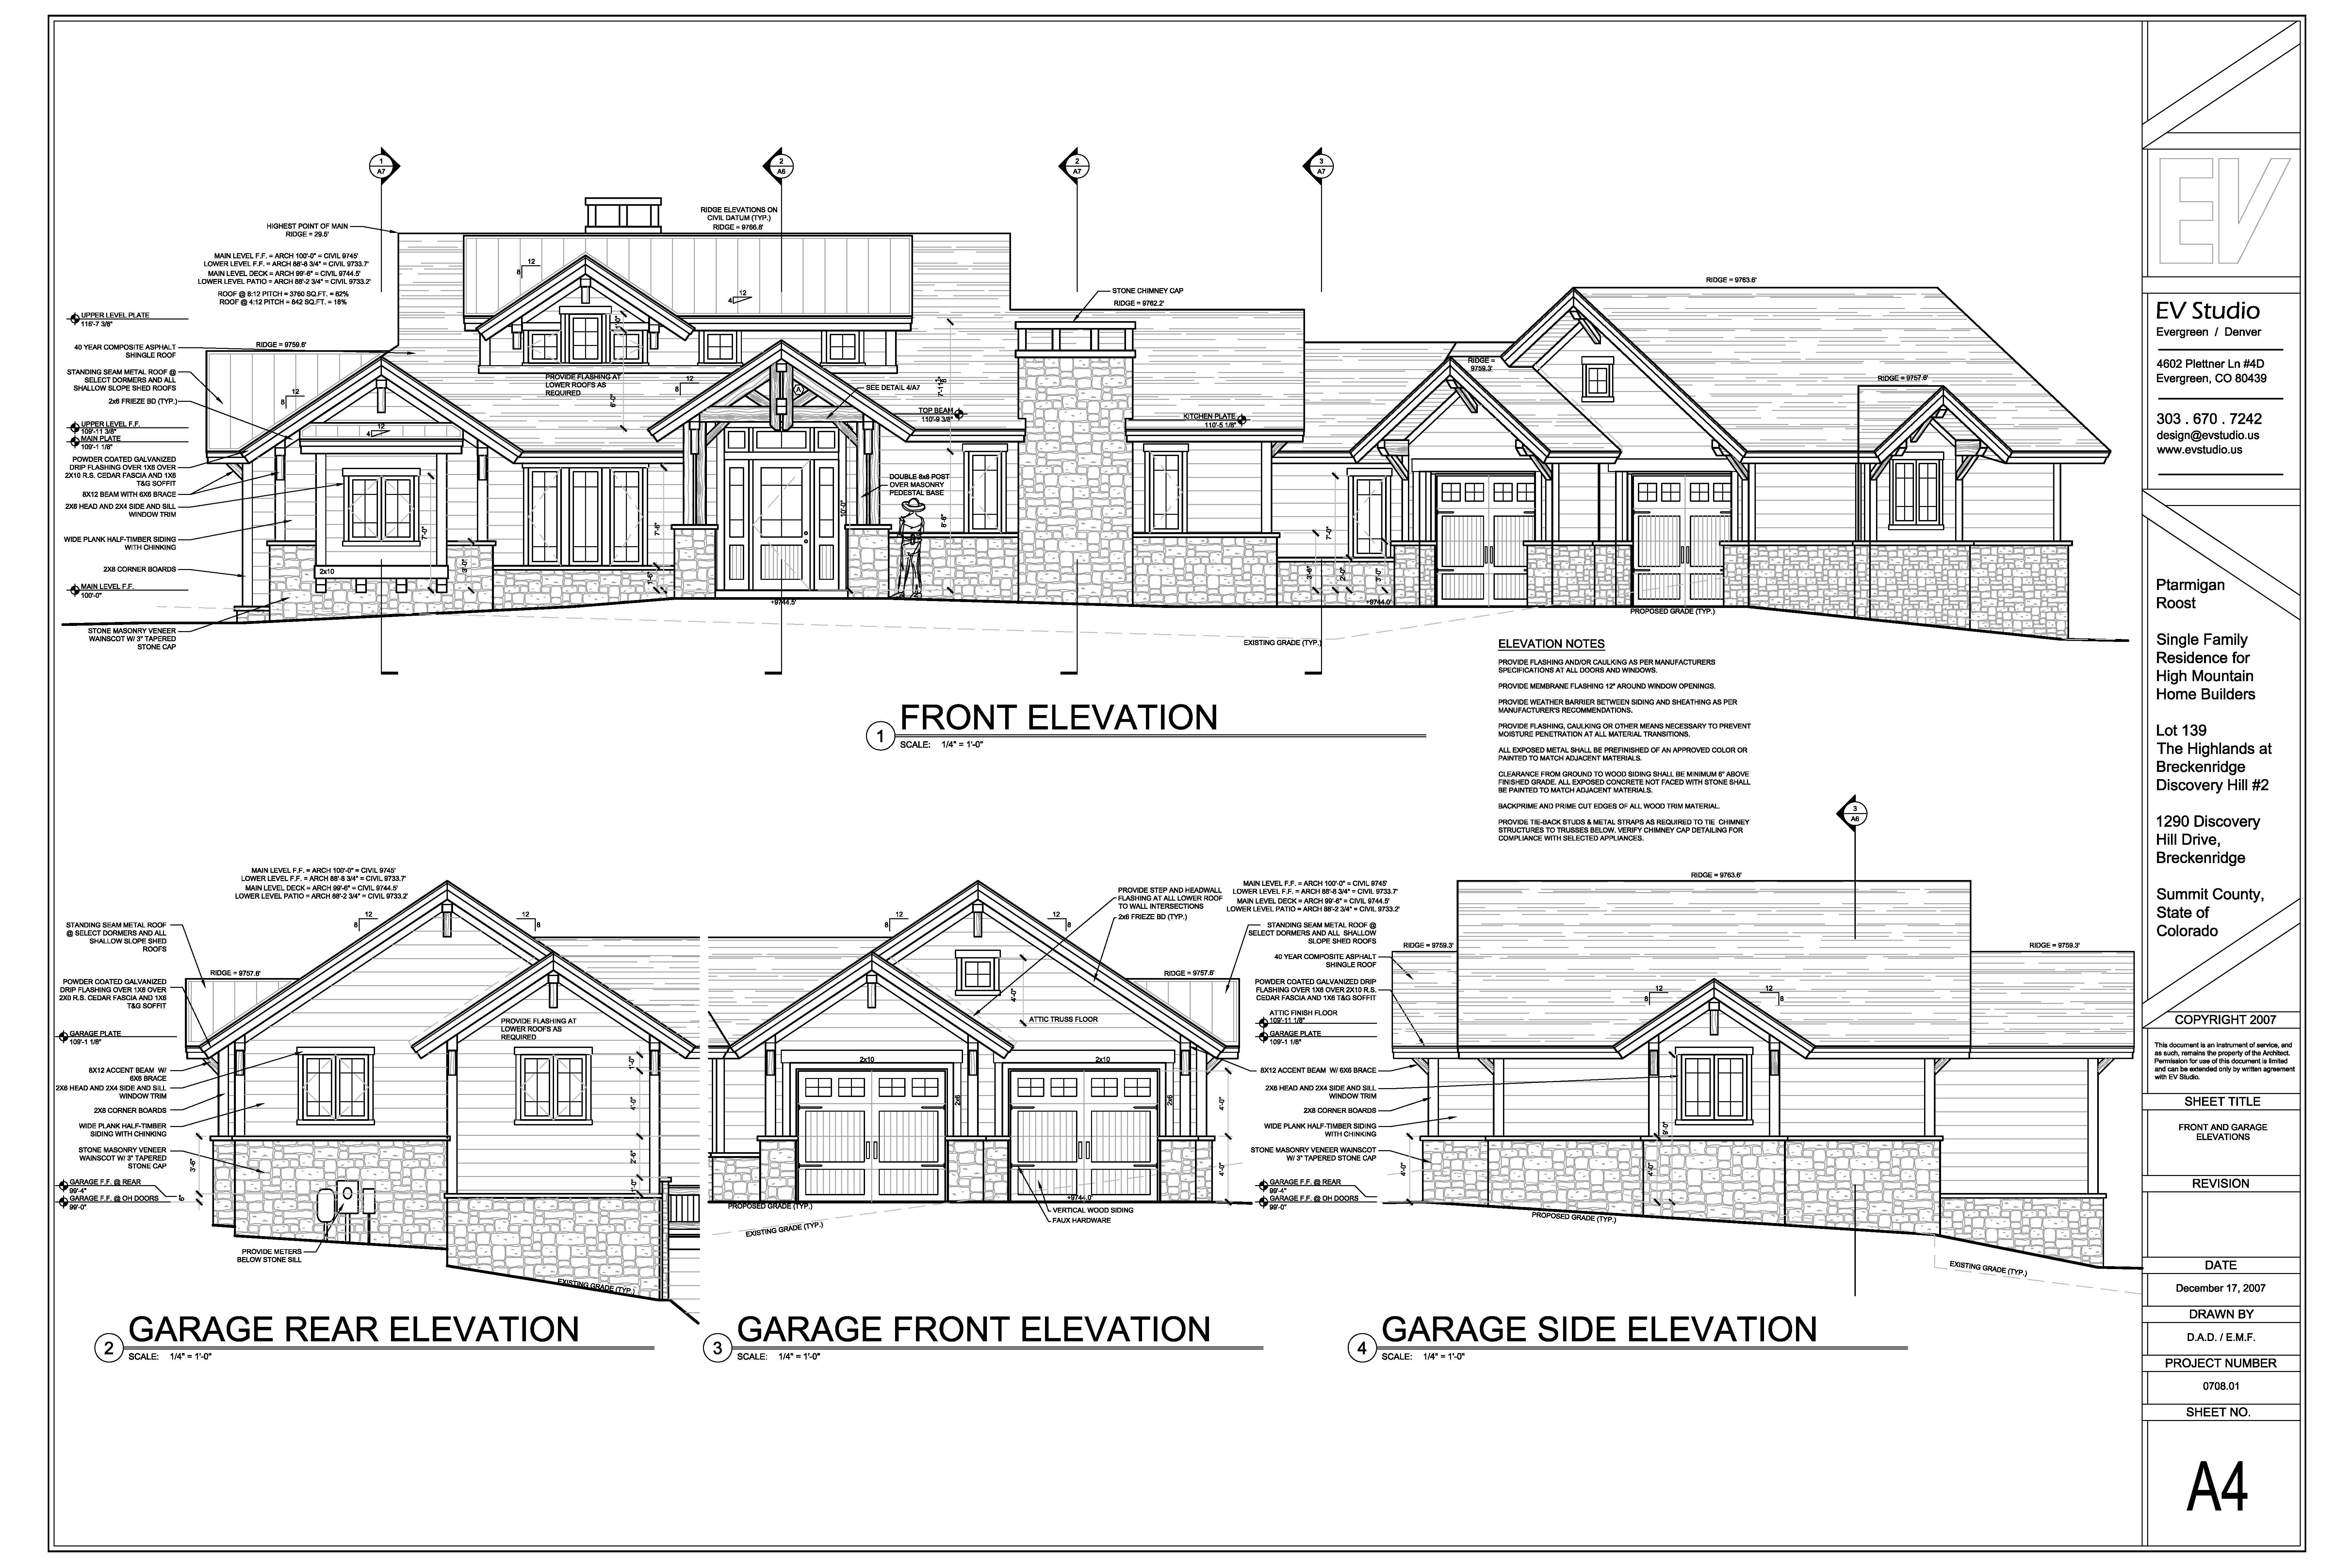 Sample SD level exterior elevations for submittal